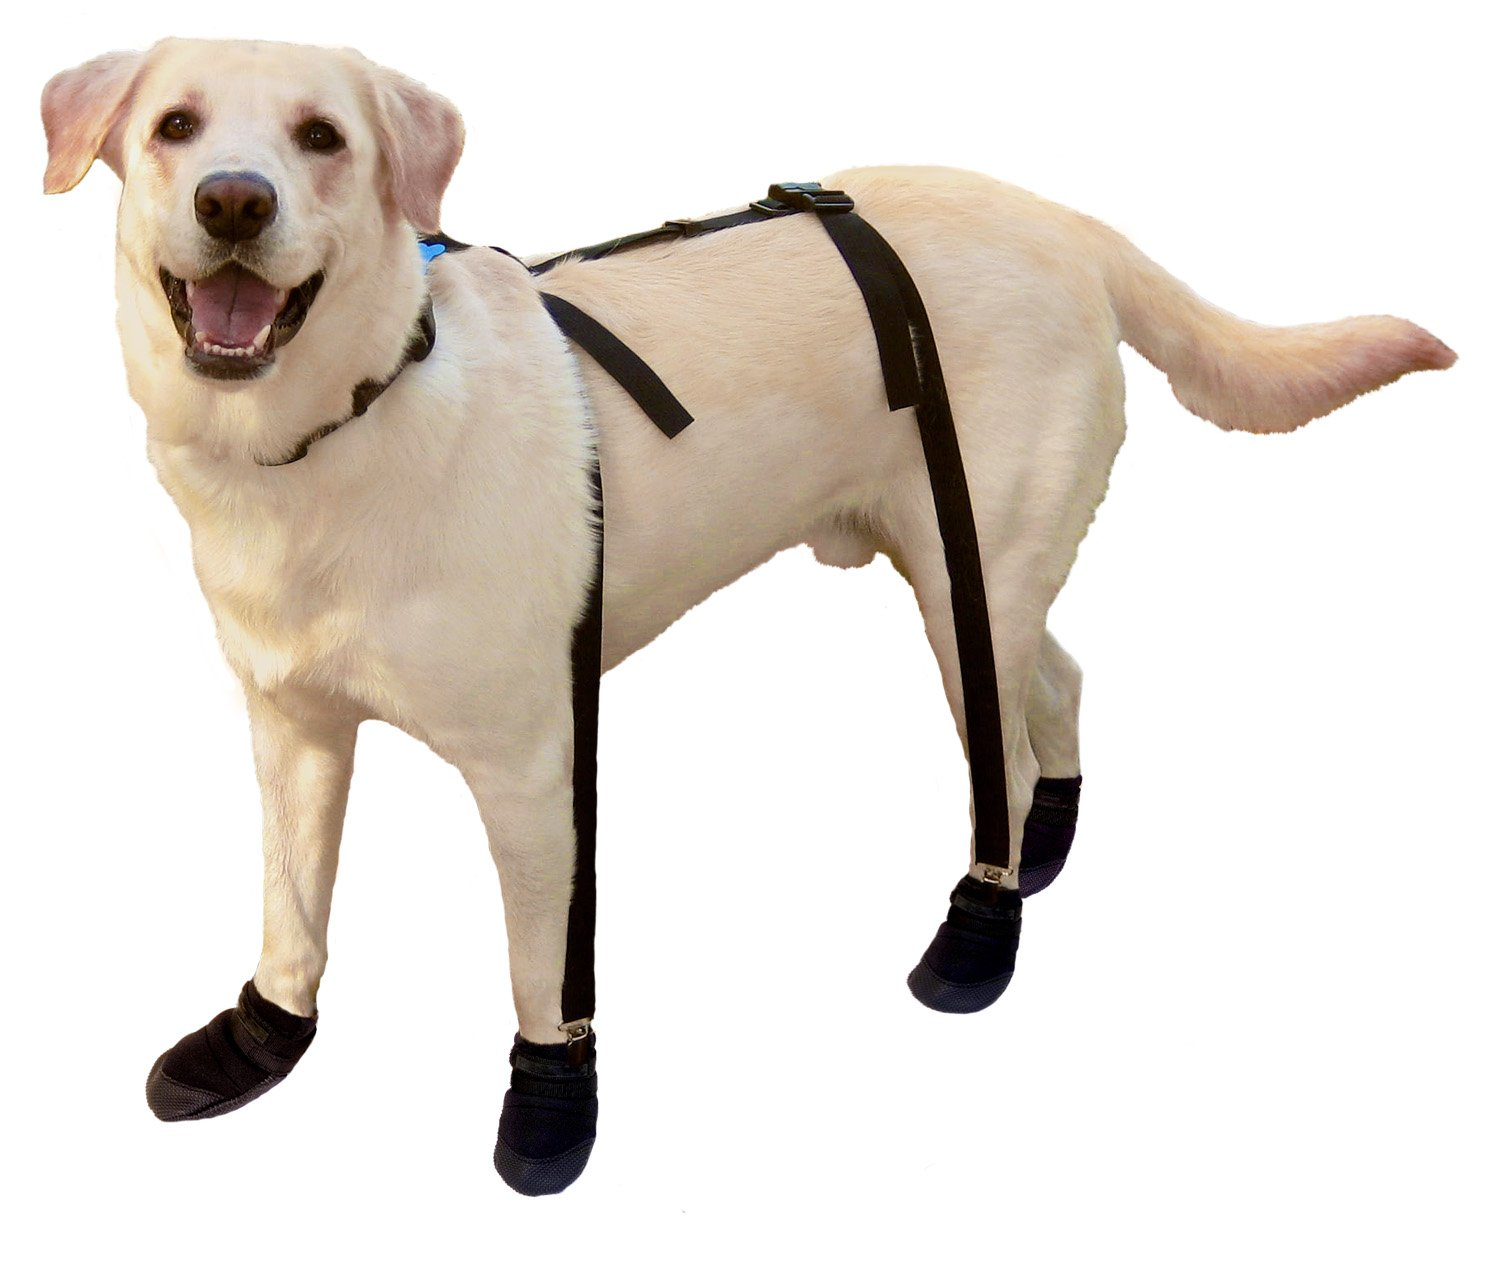 Canine Footwear Suspenders Snuggy Boots for Dog, Small, Black by Canine Footwear Suspenders